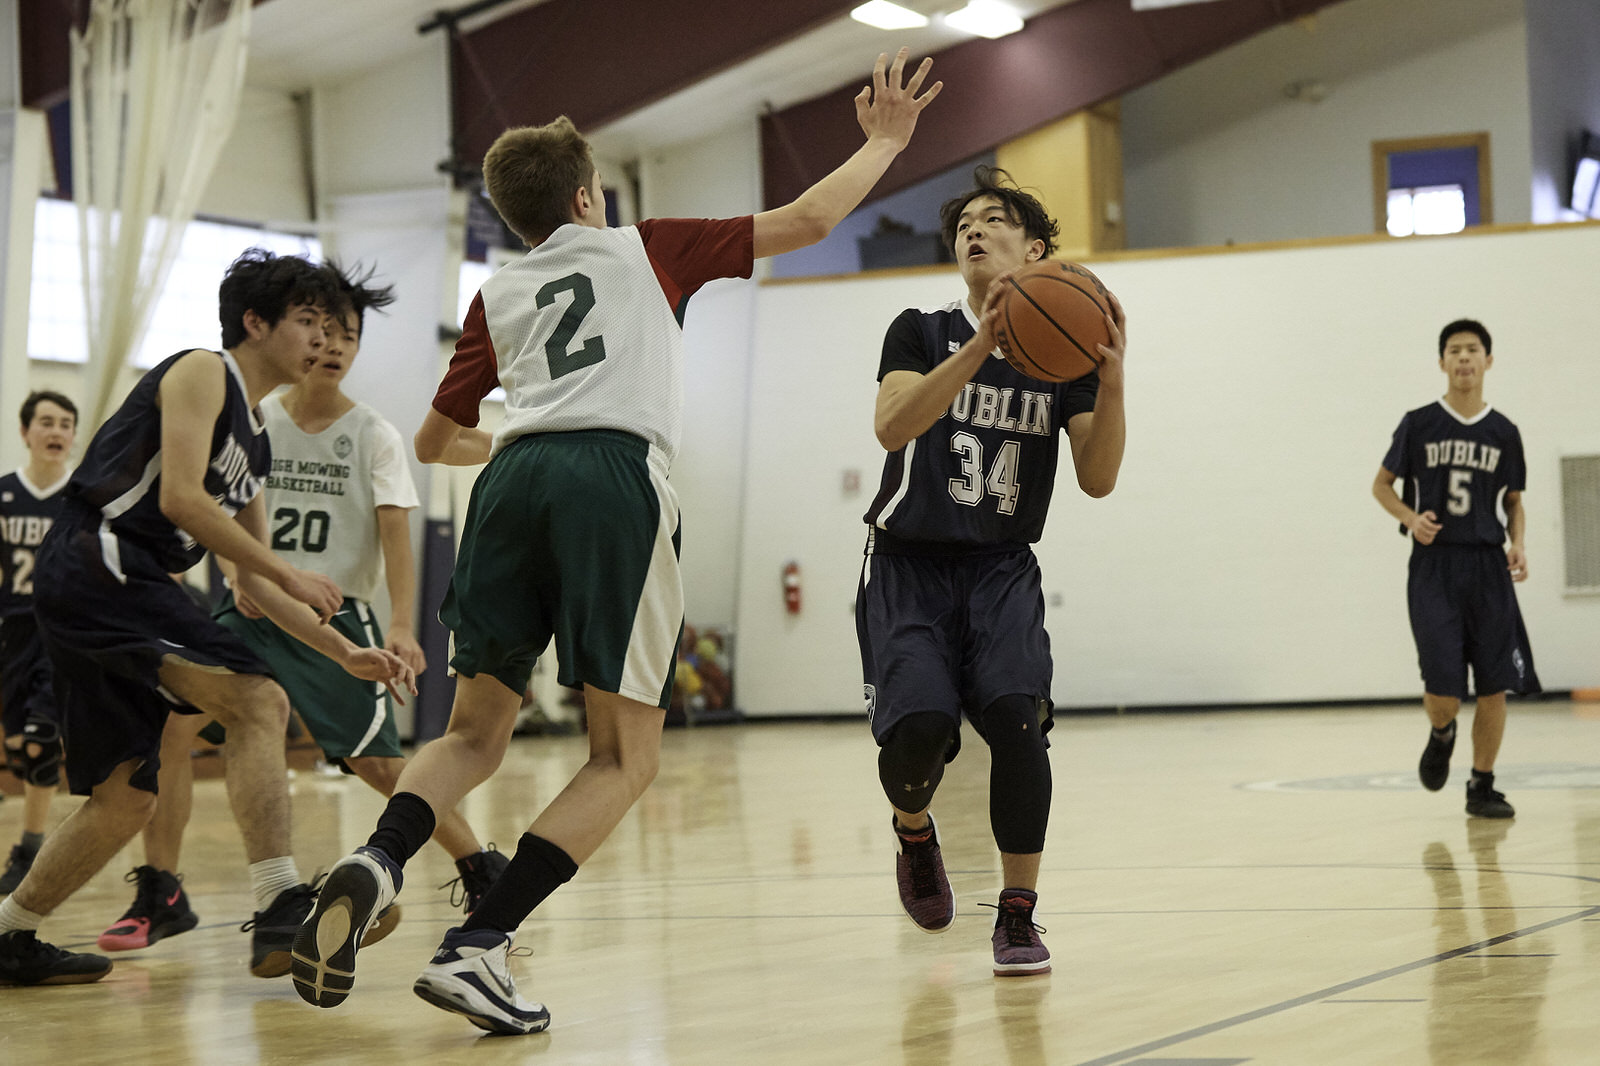 Dublin JV Boys Basketball vs High Mowing School - Jan 26 2019 - 0162.jpg